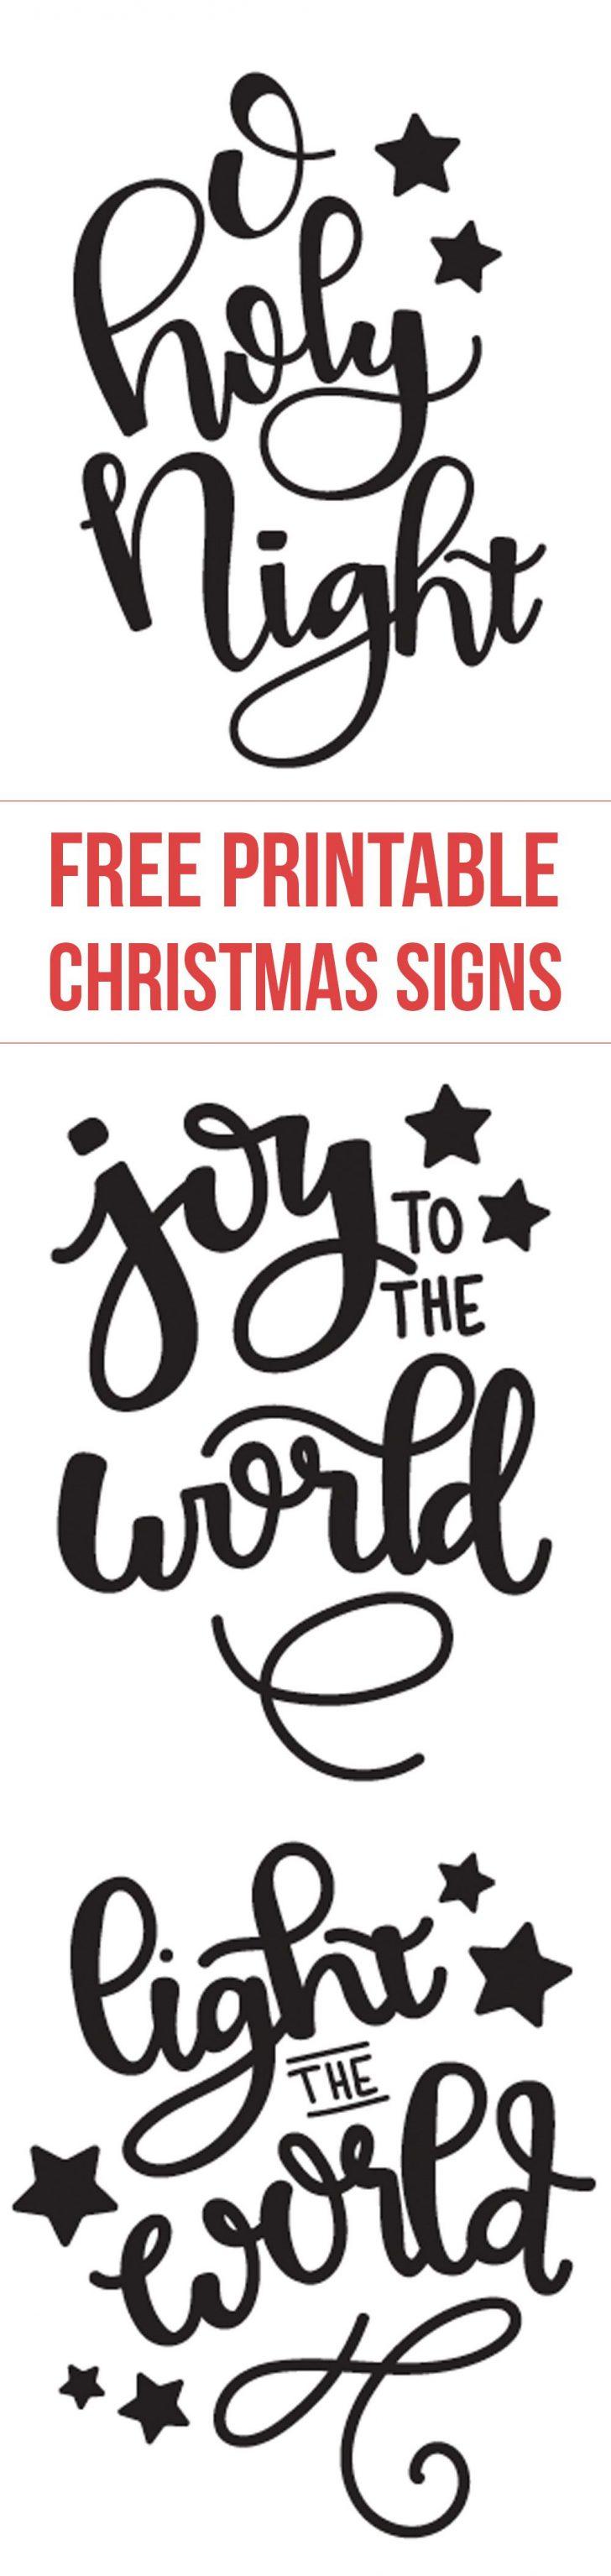 Free Printable Christmas Designs